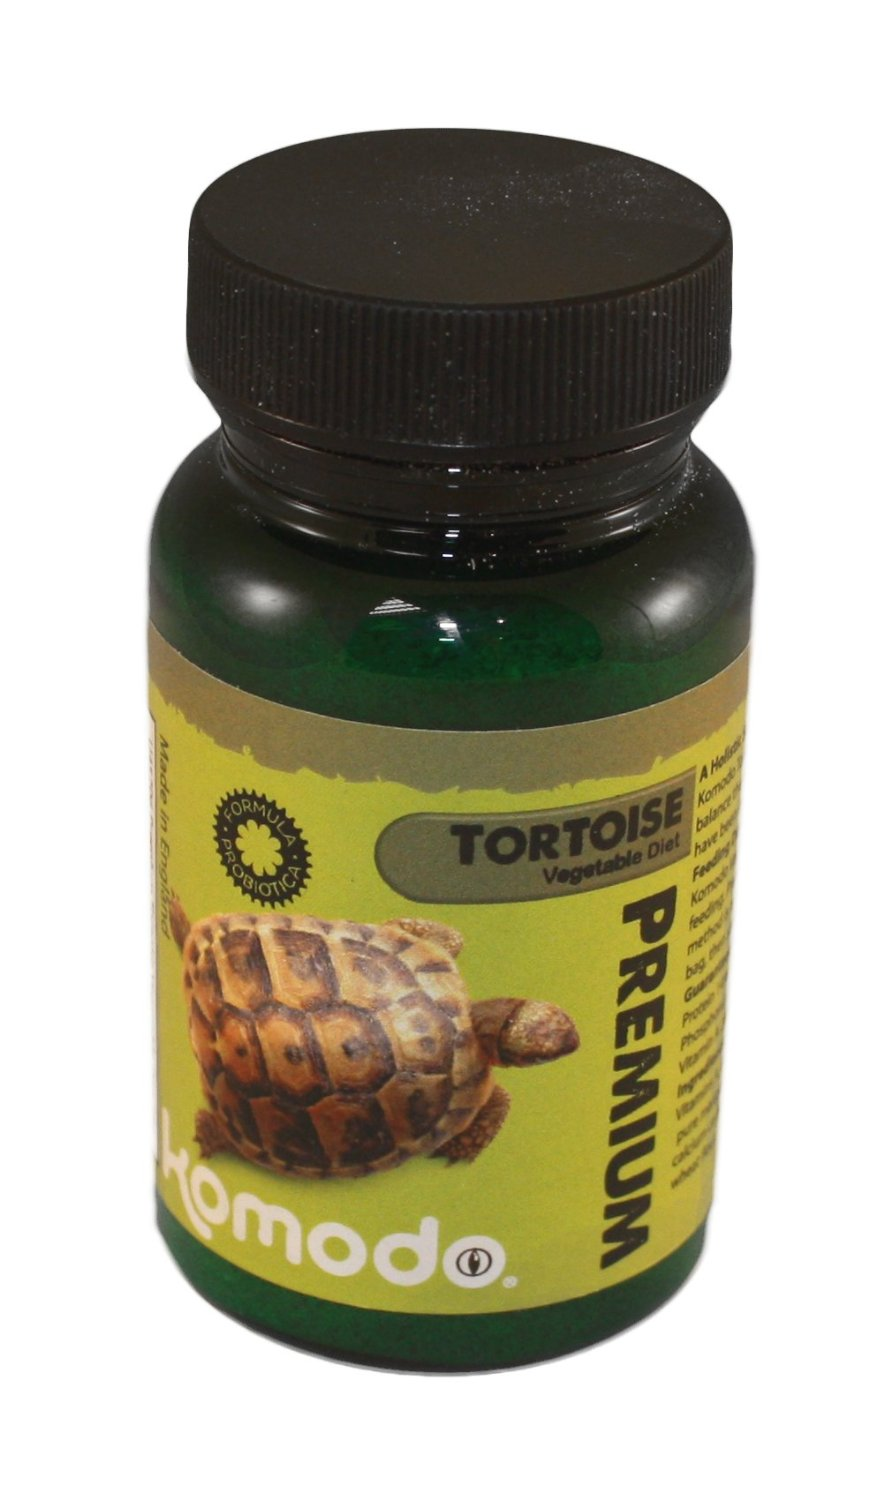 Komodo Premium Tortoise Vegetable Diet